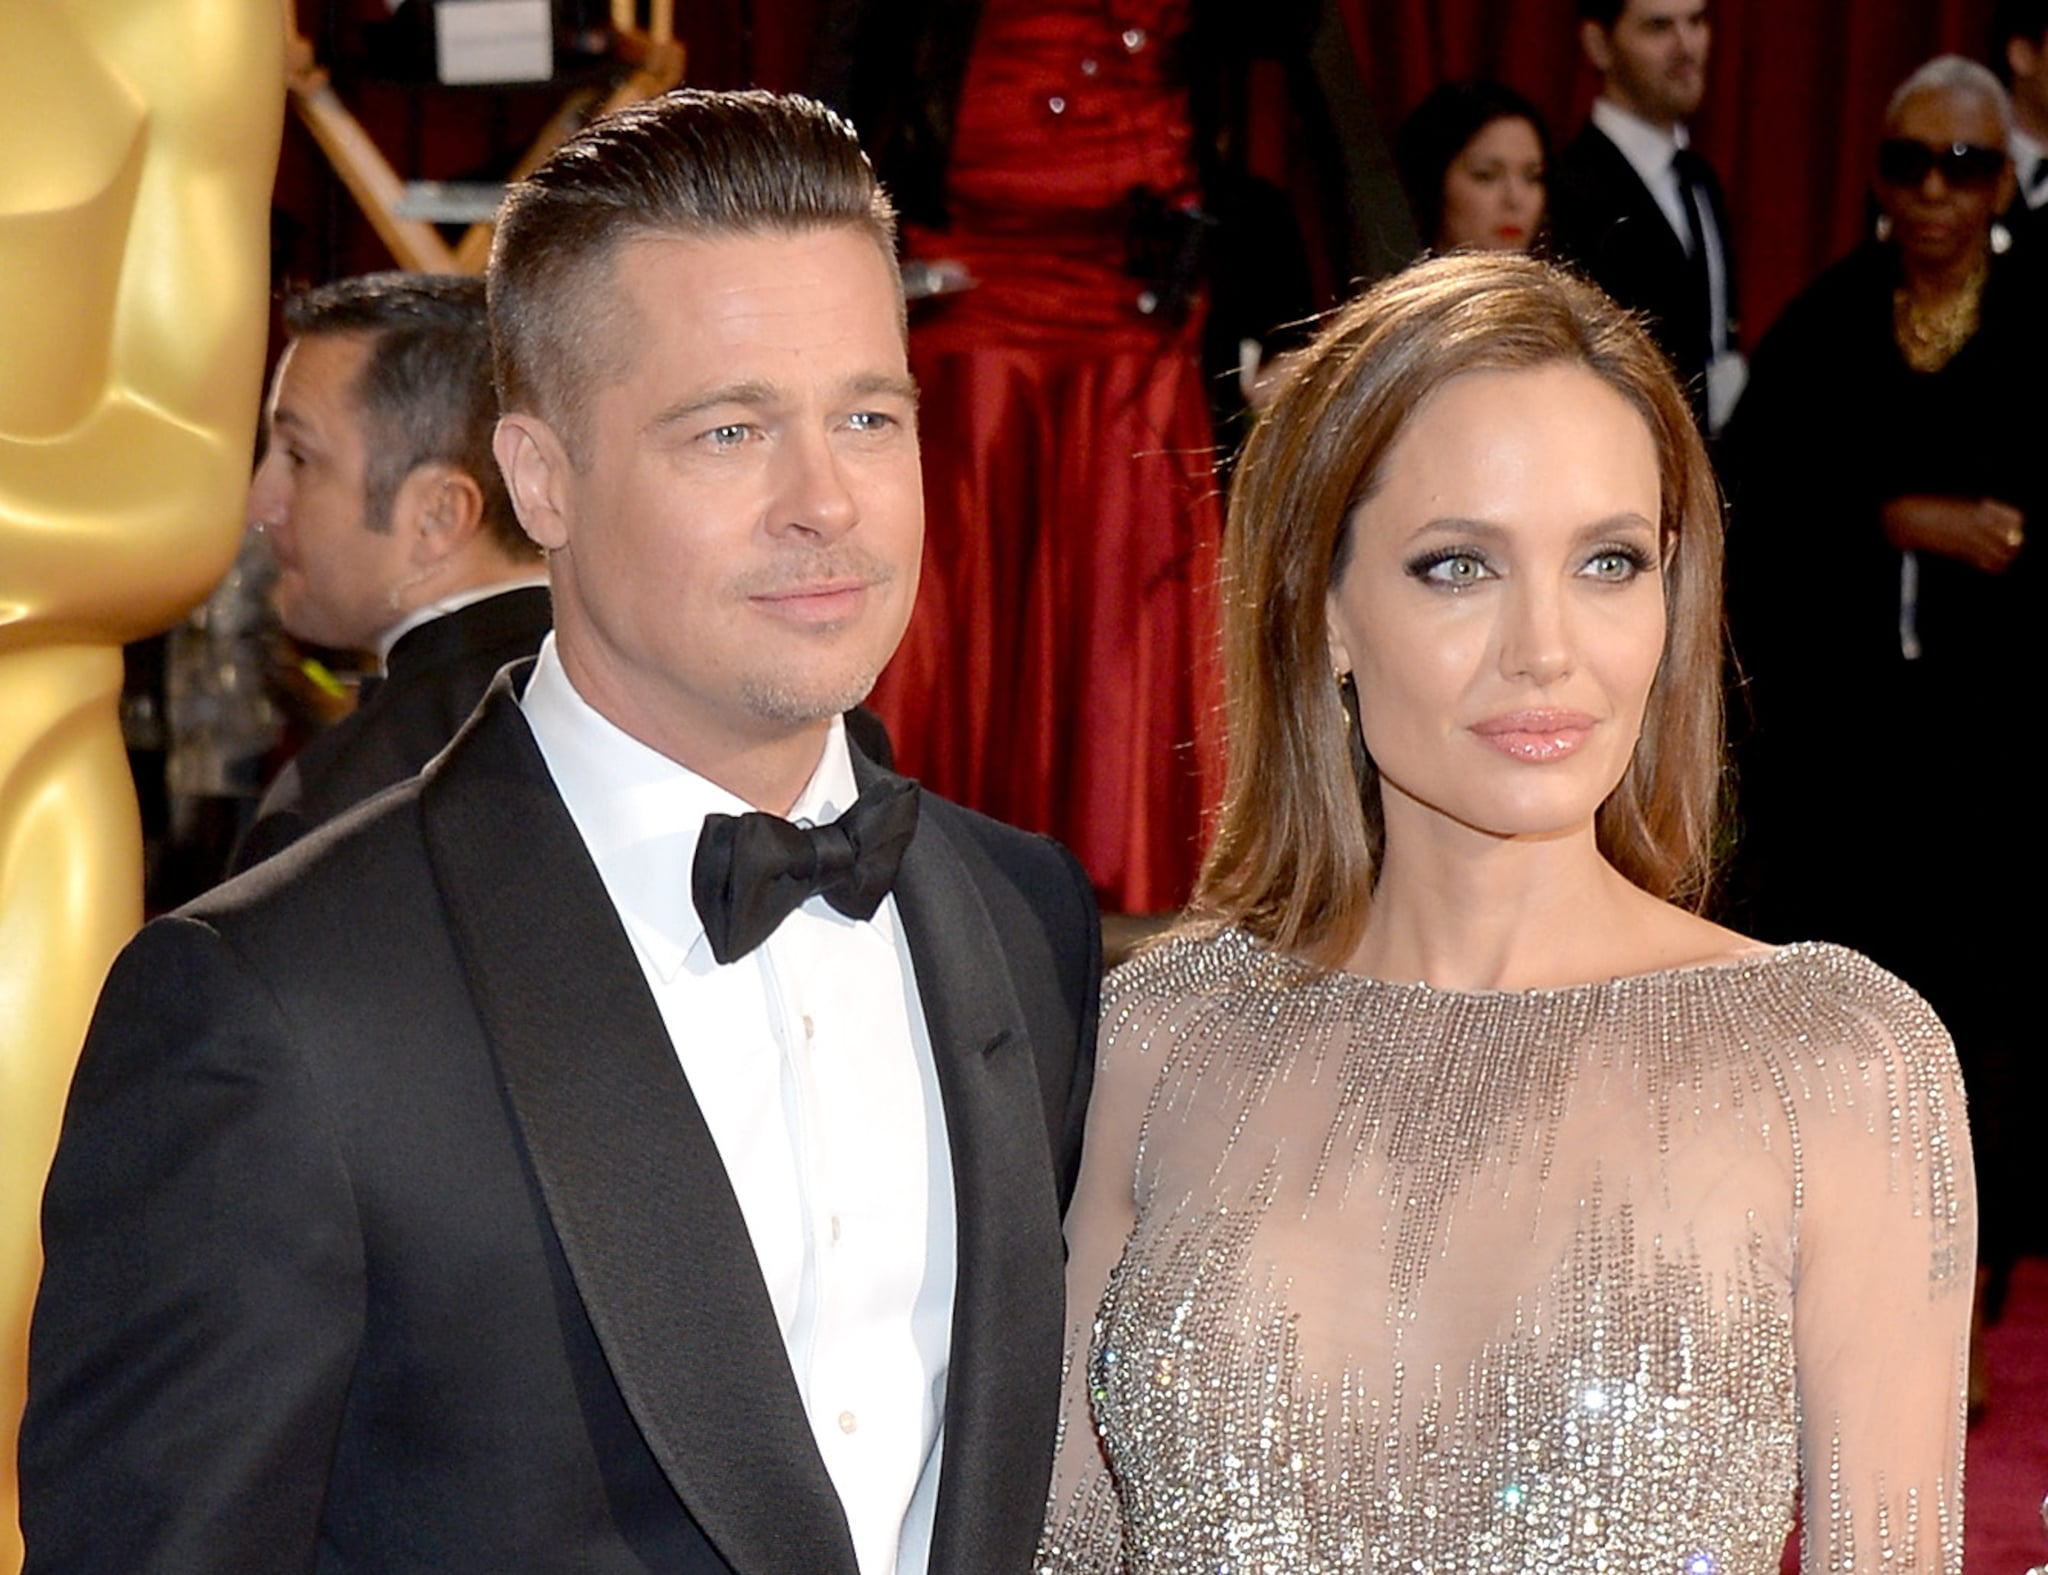 Angelina Jolie Quotes About Working With Brad Pitt 2017 ...